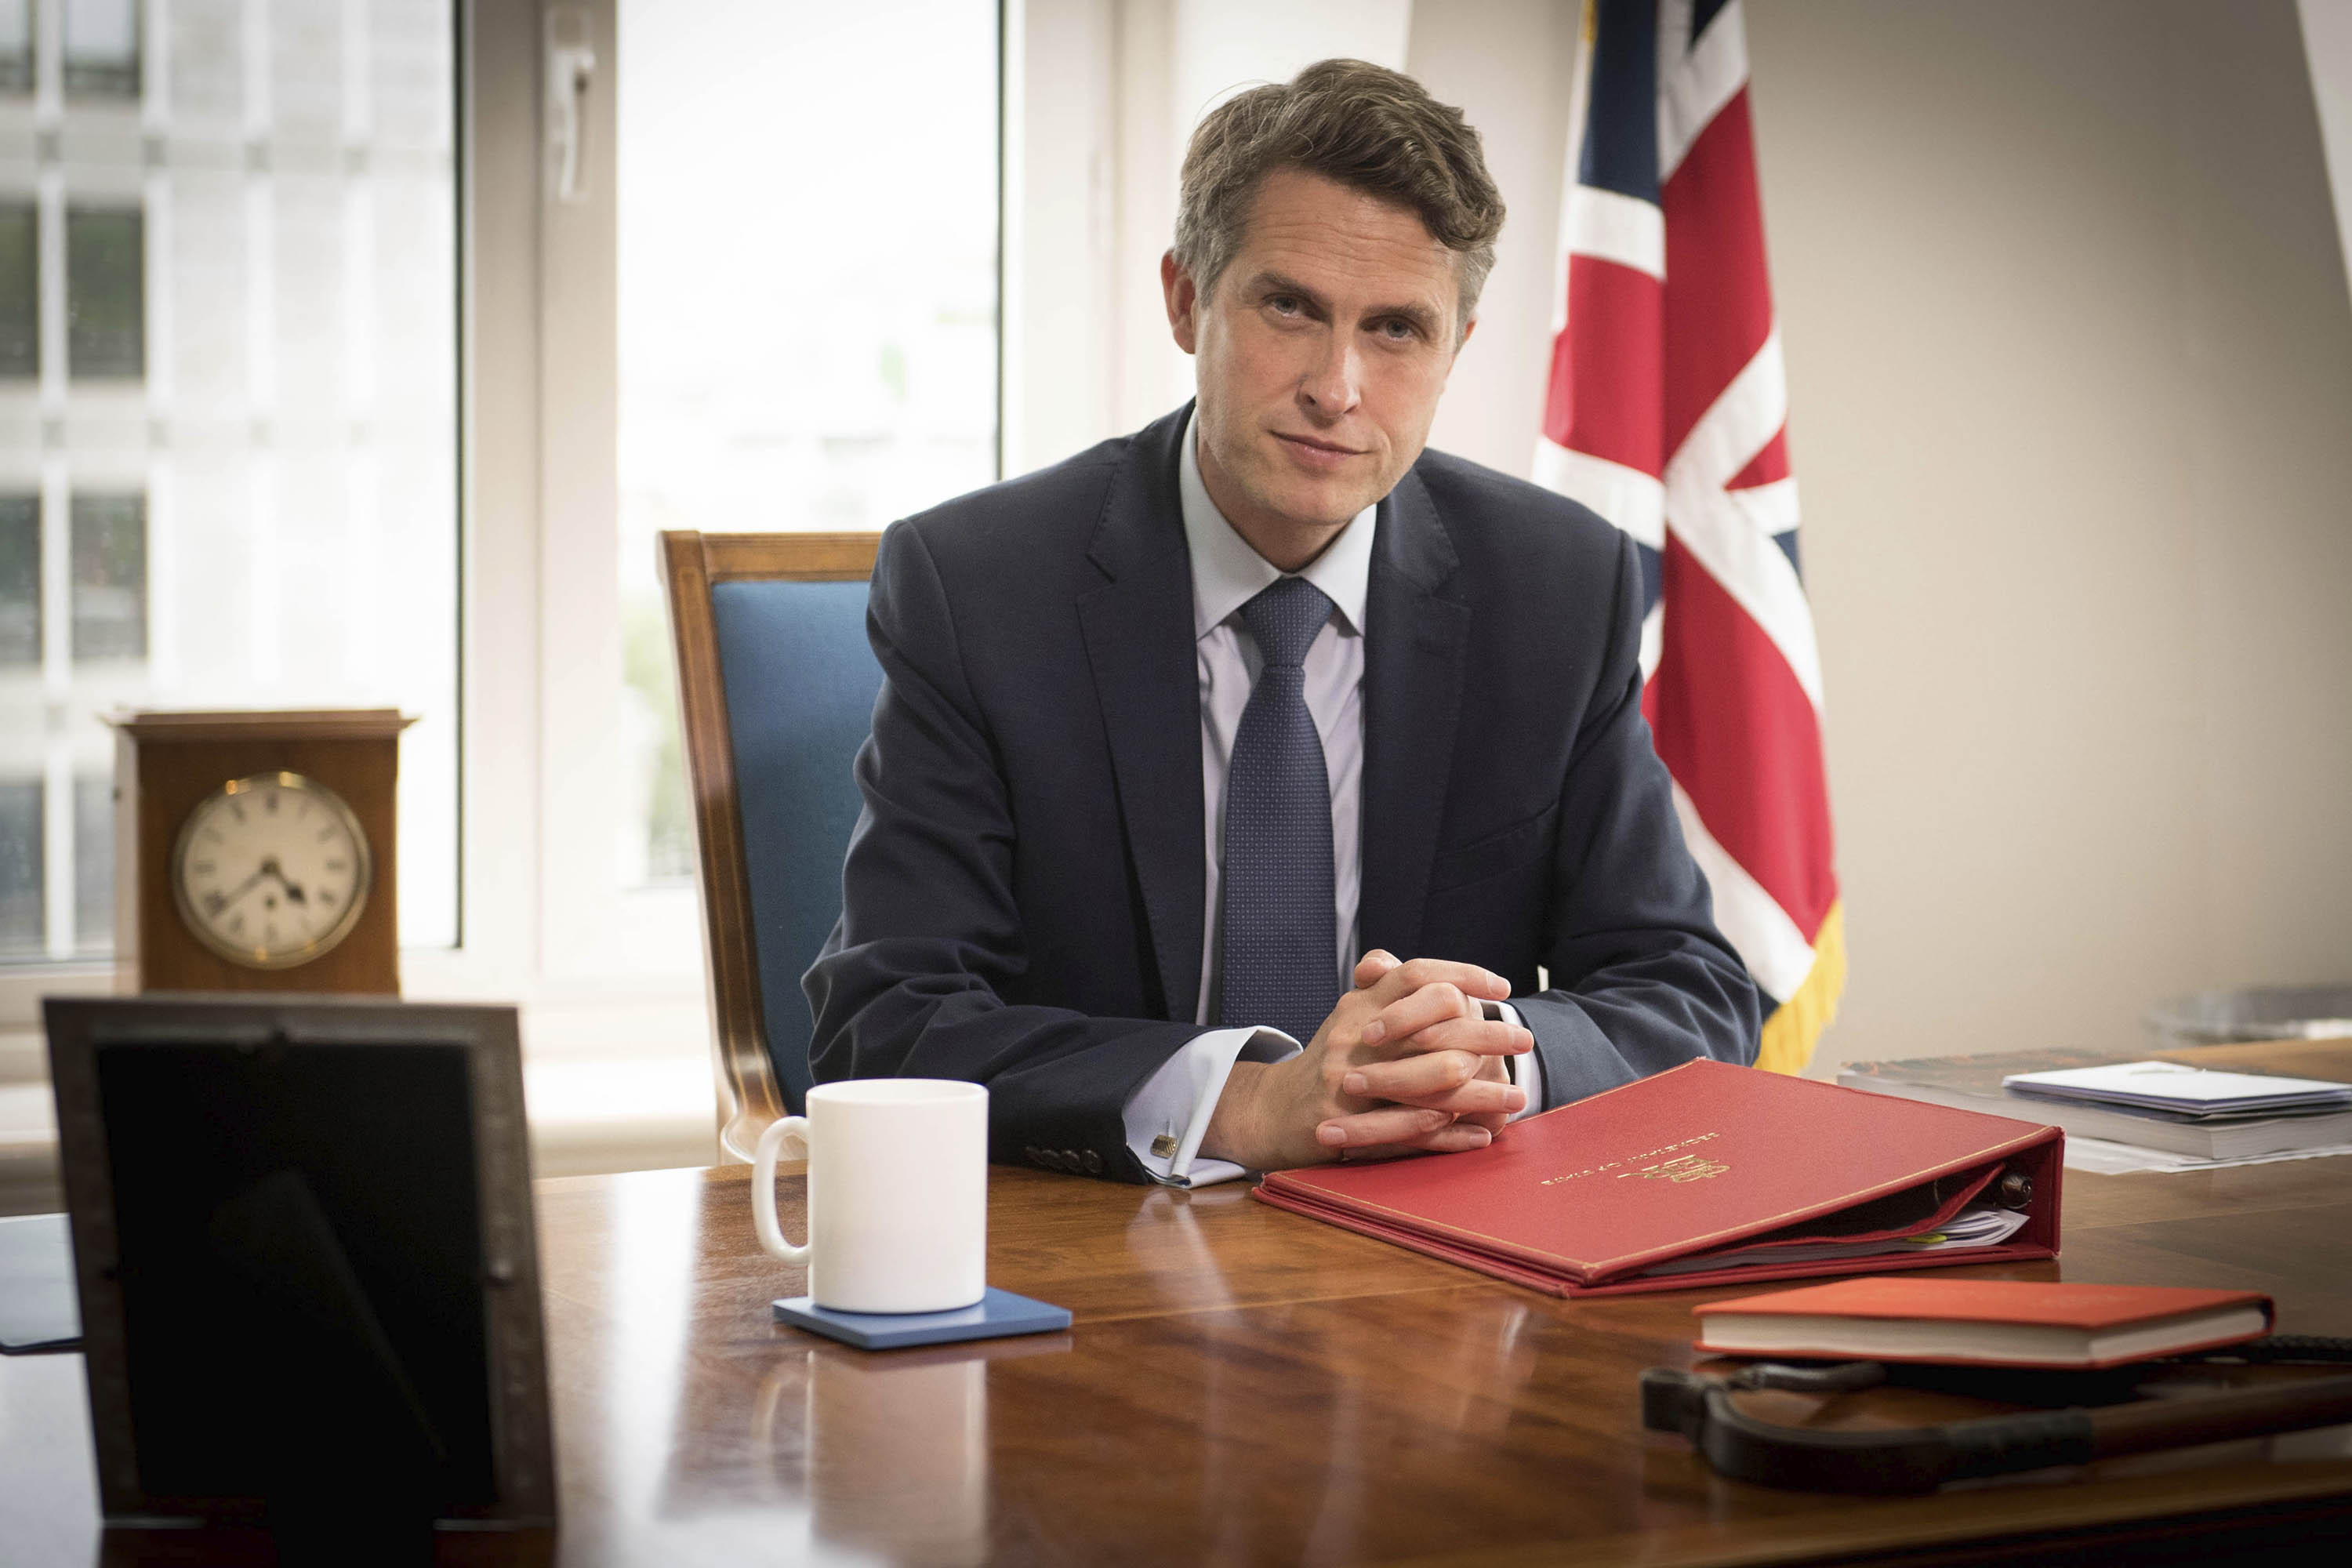 Britain's Secretary of State for Education Gavin Williamson poses for a photo in his office at the Department of Education in London on August 17.